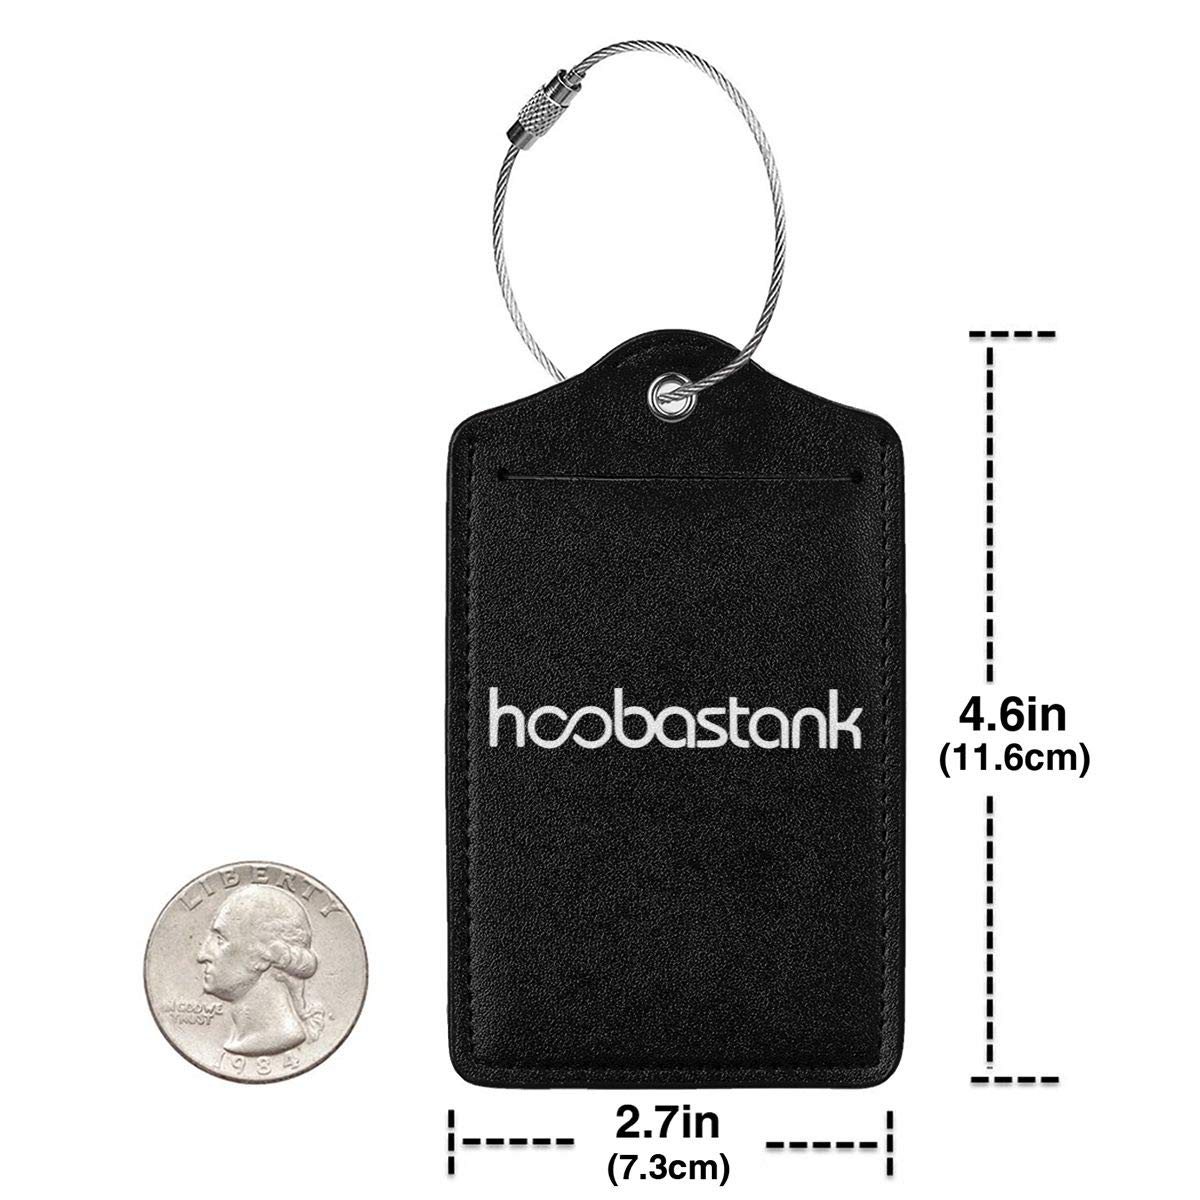 Hoobastank Logo Leather Luggage Tag Travel ID Label For Baggage Suitcase